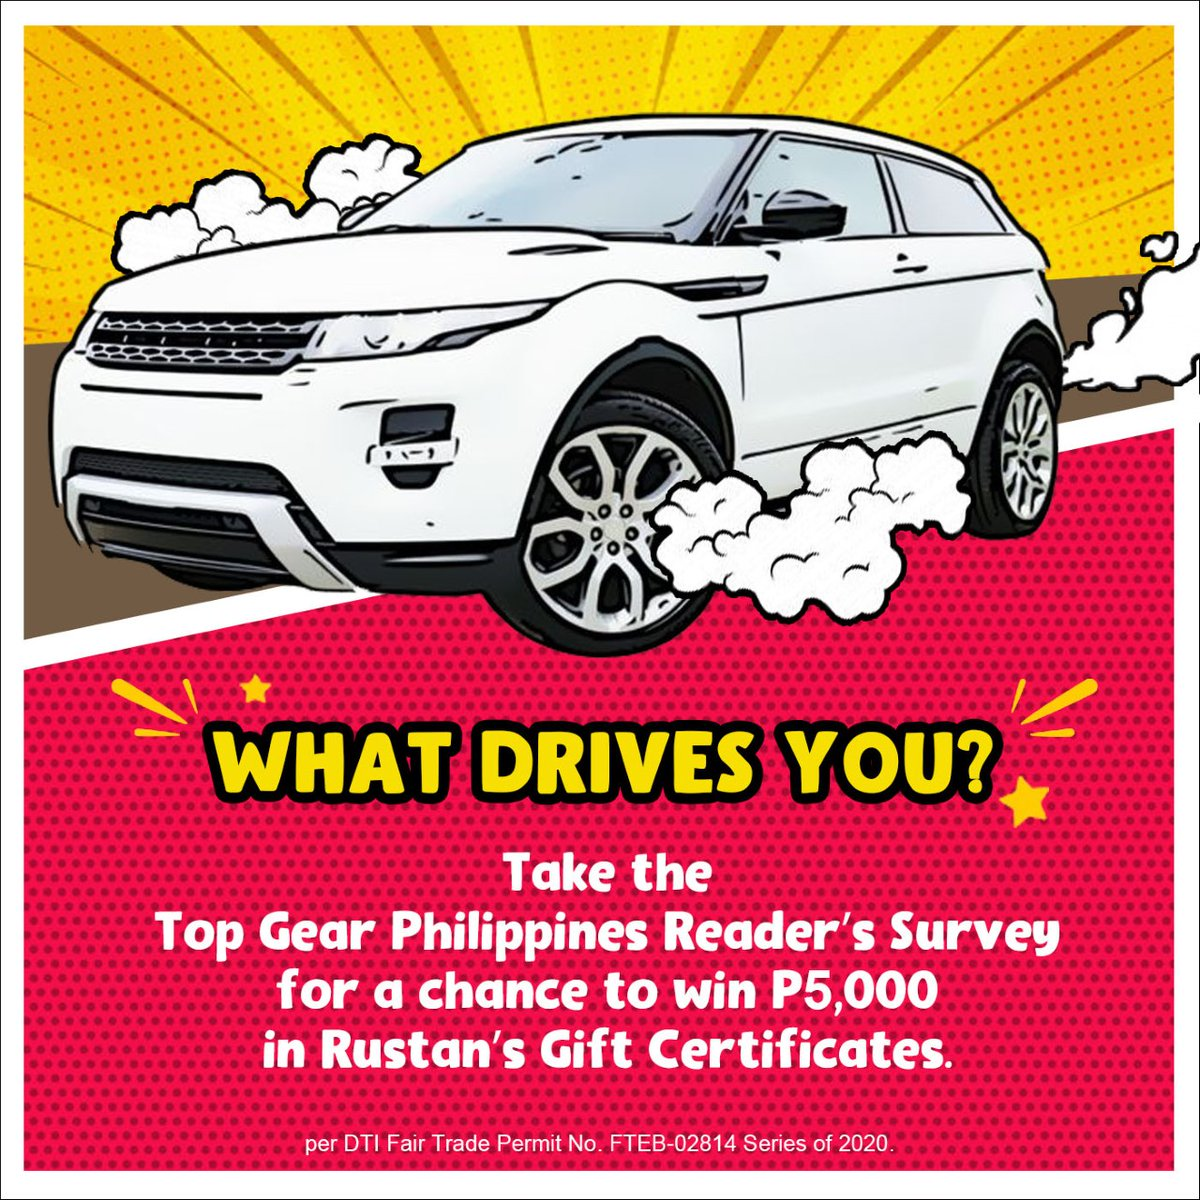 Do you want to win P5,000 worth of gift certificates? Answer our Reader Survey! Go to: http://bit.ly/324G18Z pic.twitter.com/jl3wx6jrN1